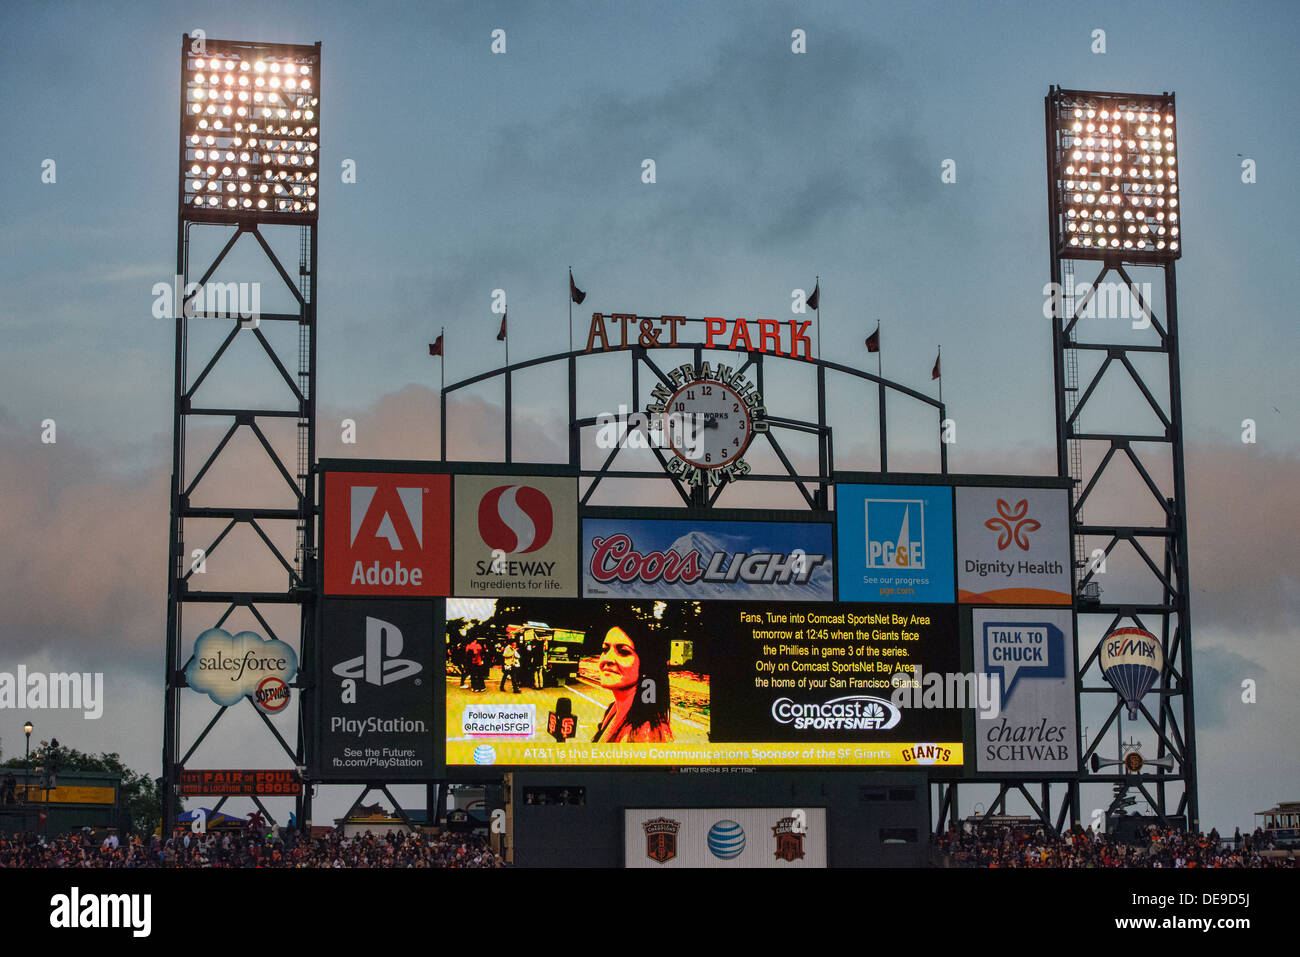 AT&T Park, home of the San Francisco Giants - Stock Image